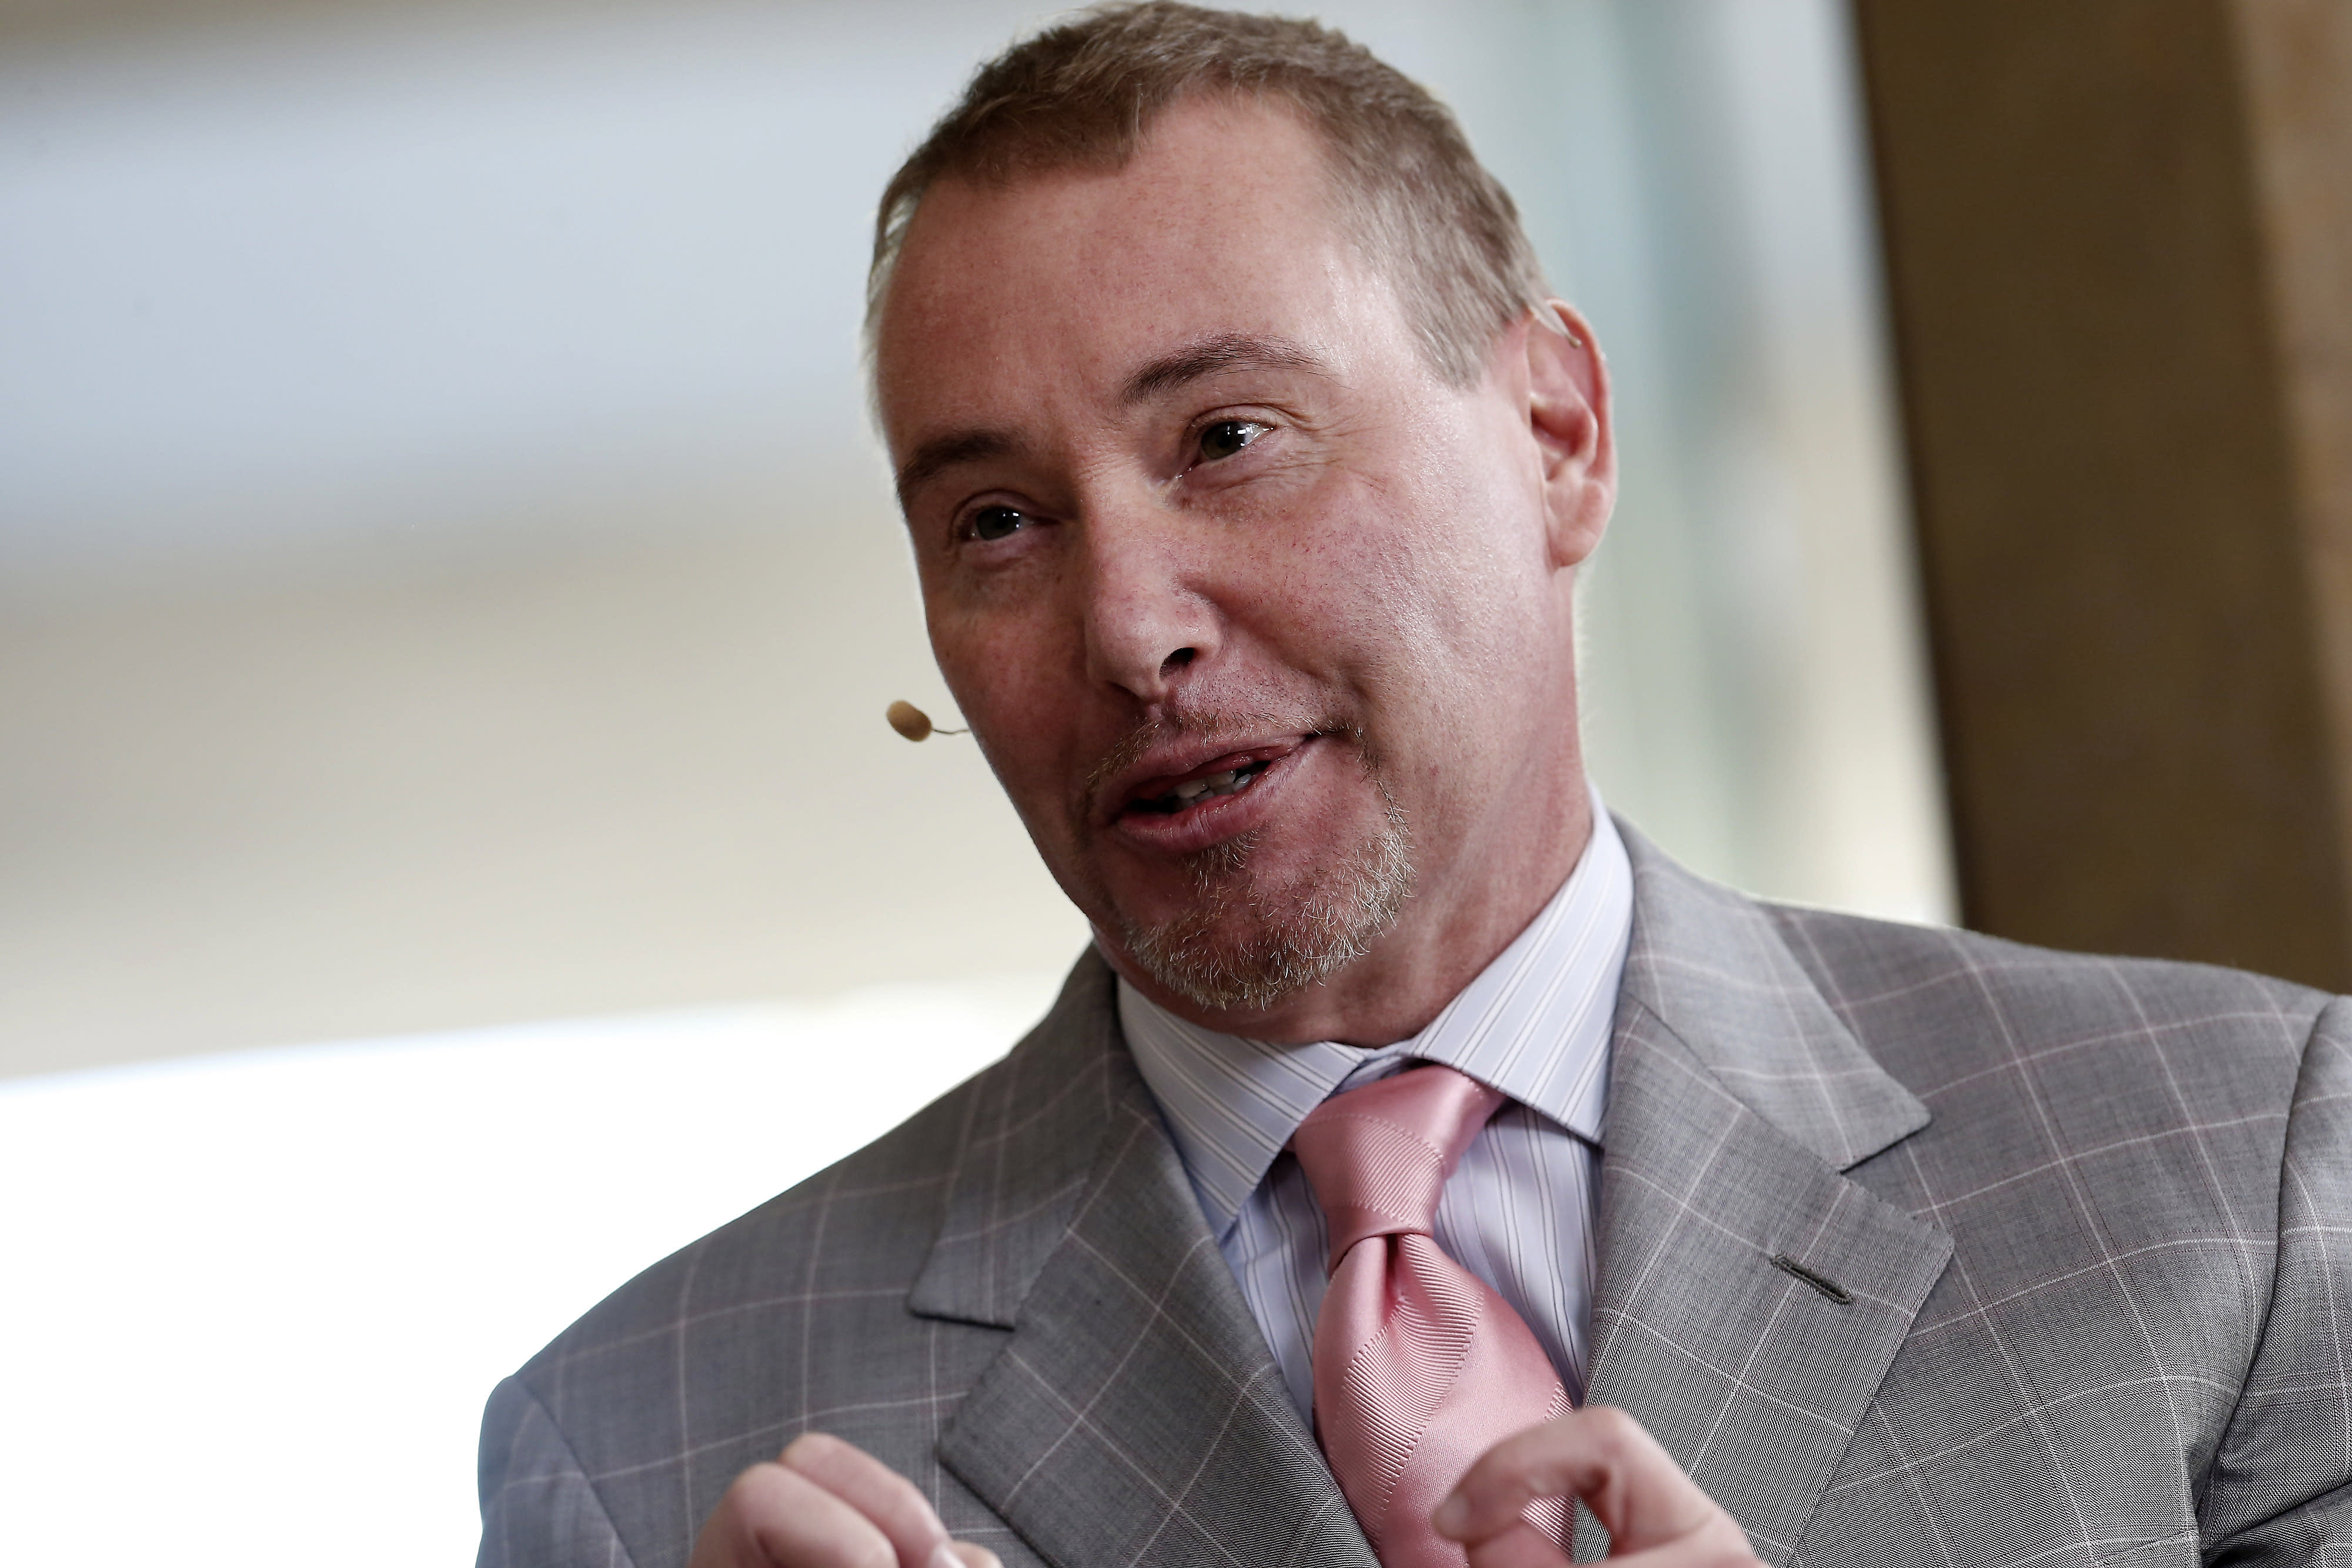 Jeffrey Gundlach says the Fed may have to start 'QE-lite' to boost bank reserves